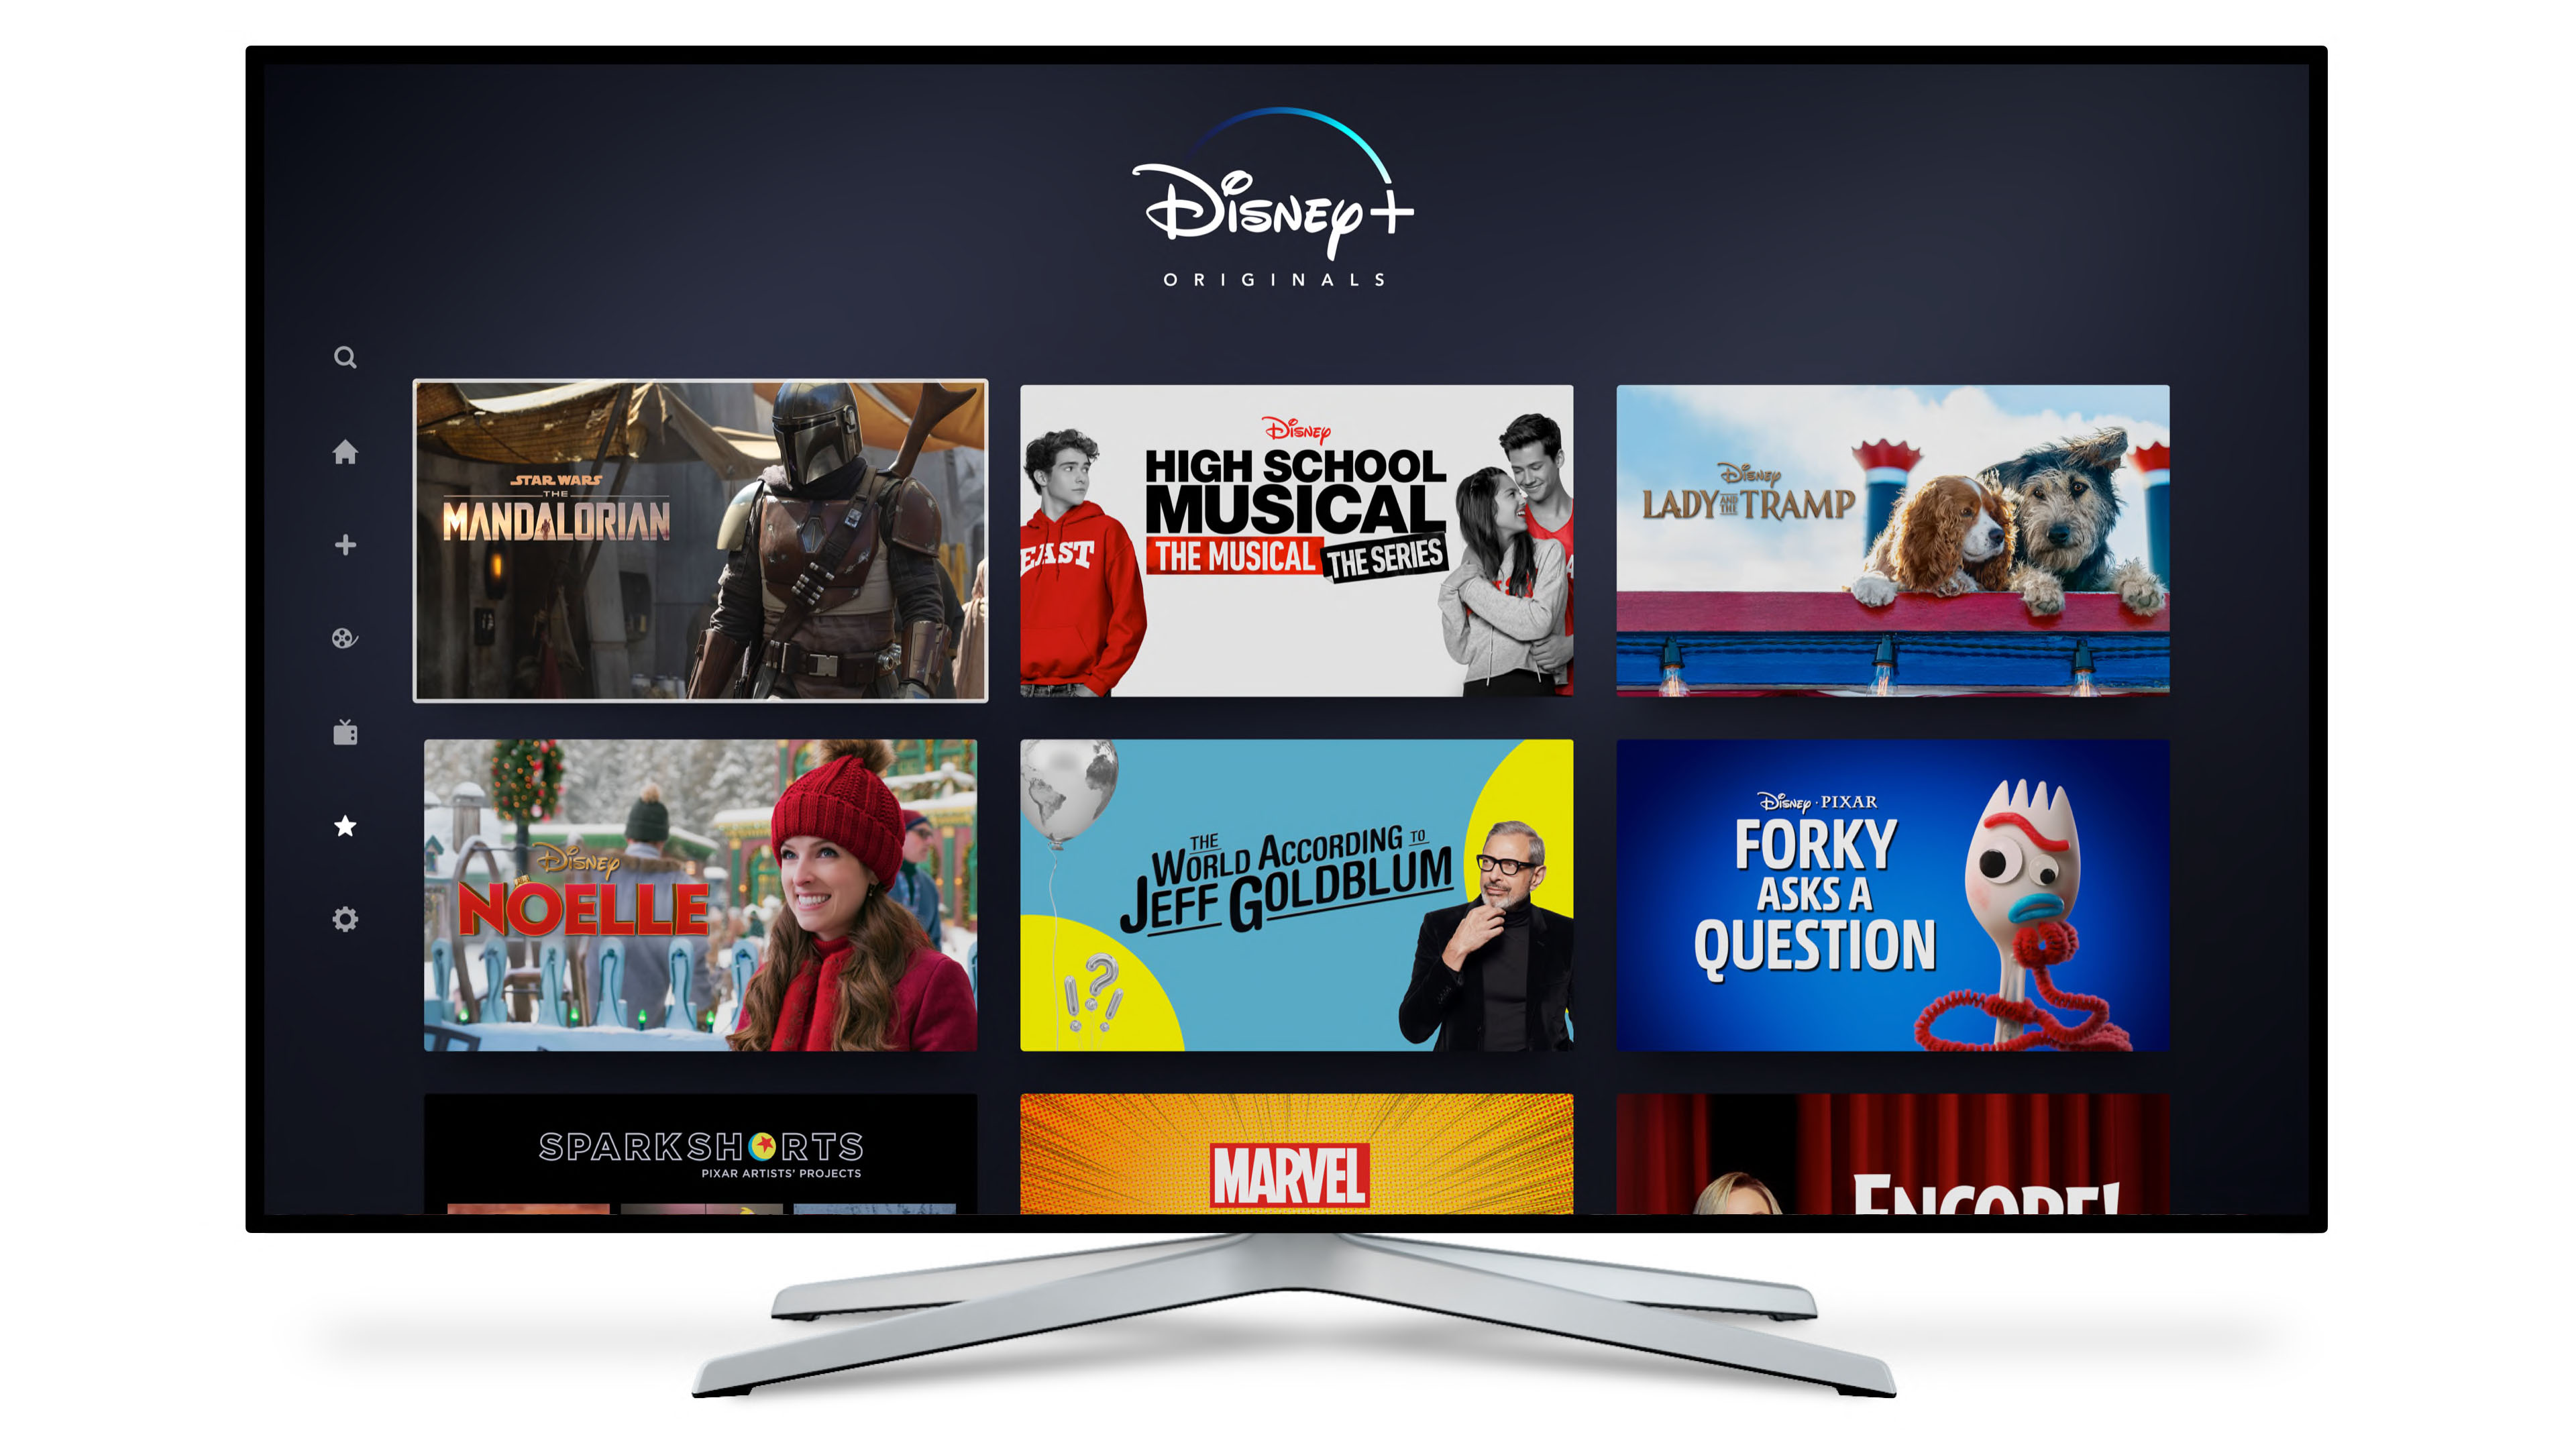 How to get Disney+ if you're already a Hulu + Live or Hulu subscriber